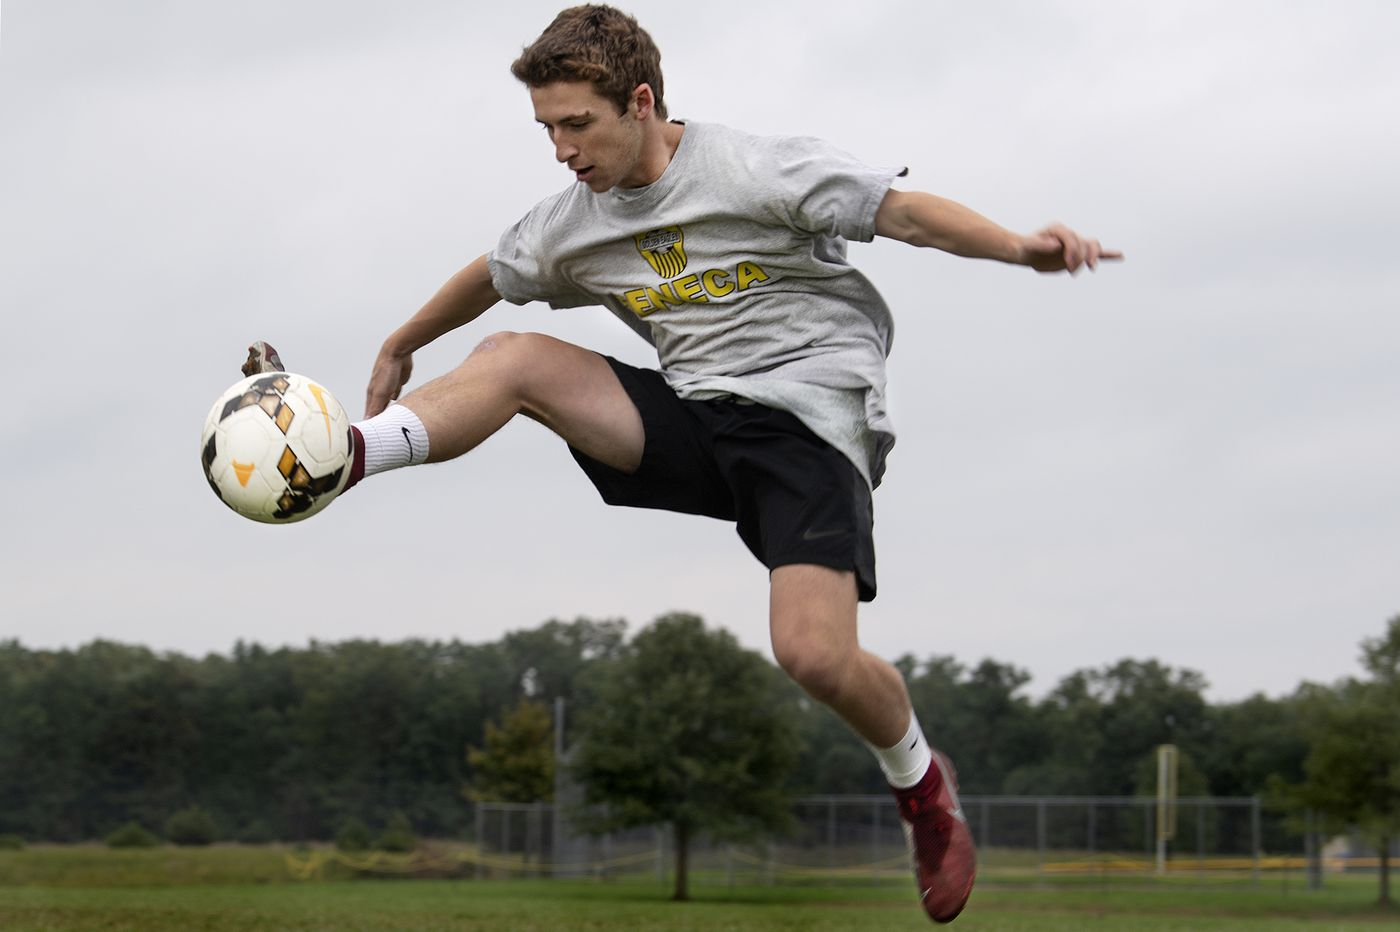 Luke Leach and the Seneca soccer team are on the rise